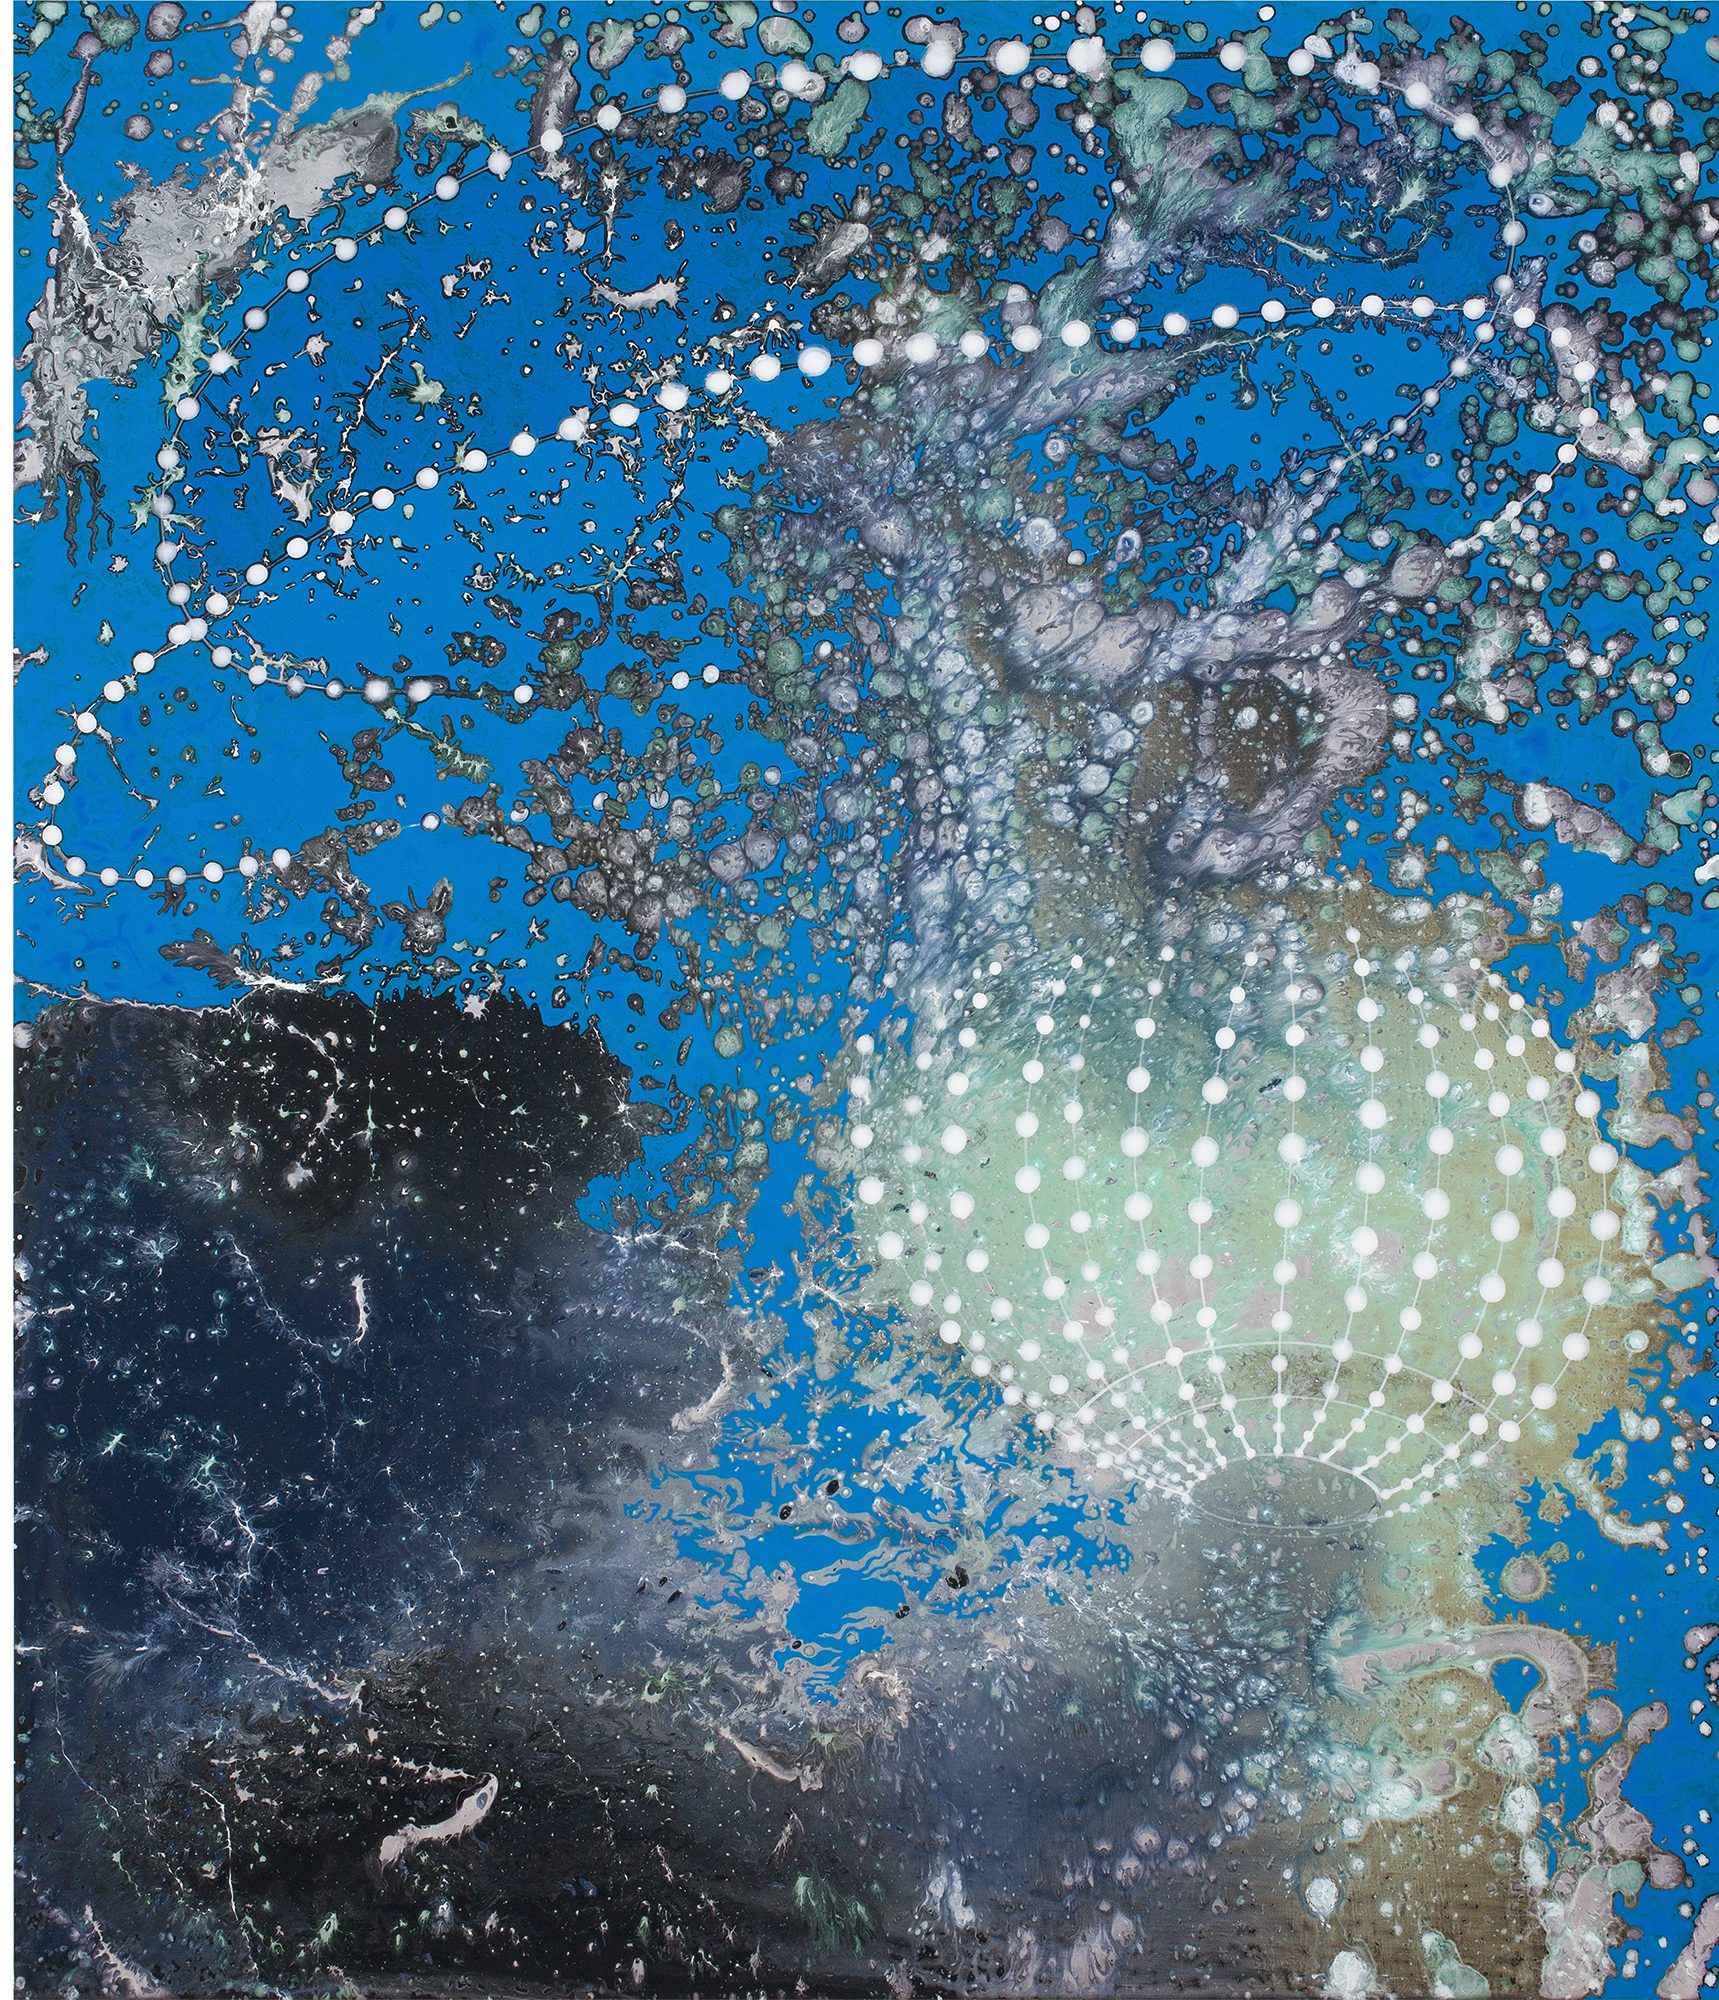 Barbara Takenaga (American, b. 1949) Green Light, 2013. Acrylic on linen, 42 x 36 in. Collection of Bruce and Donna Polichar